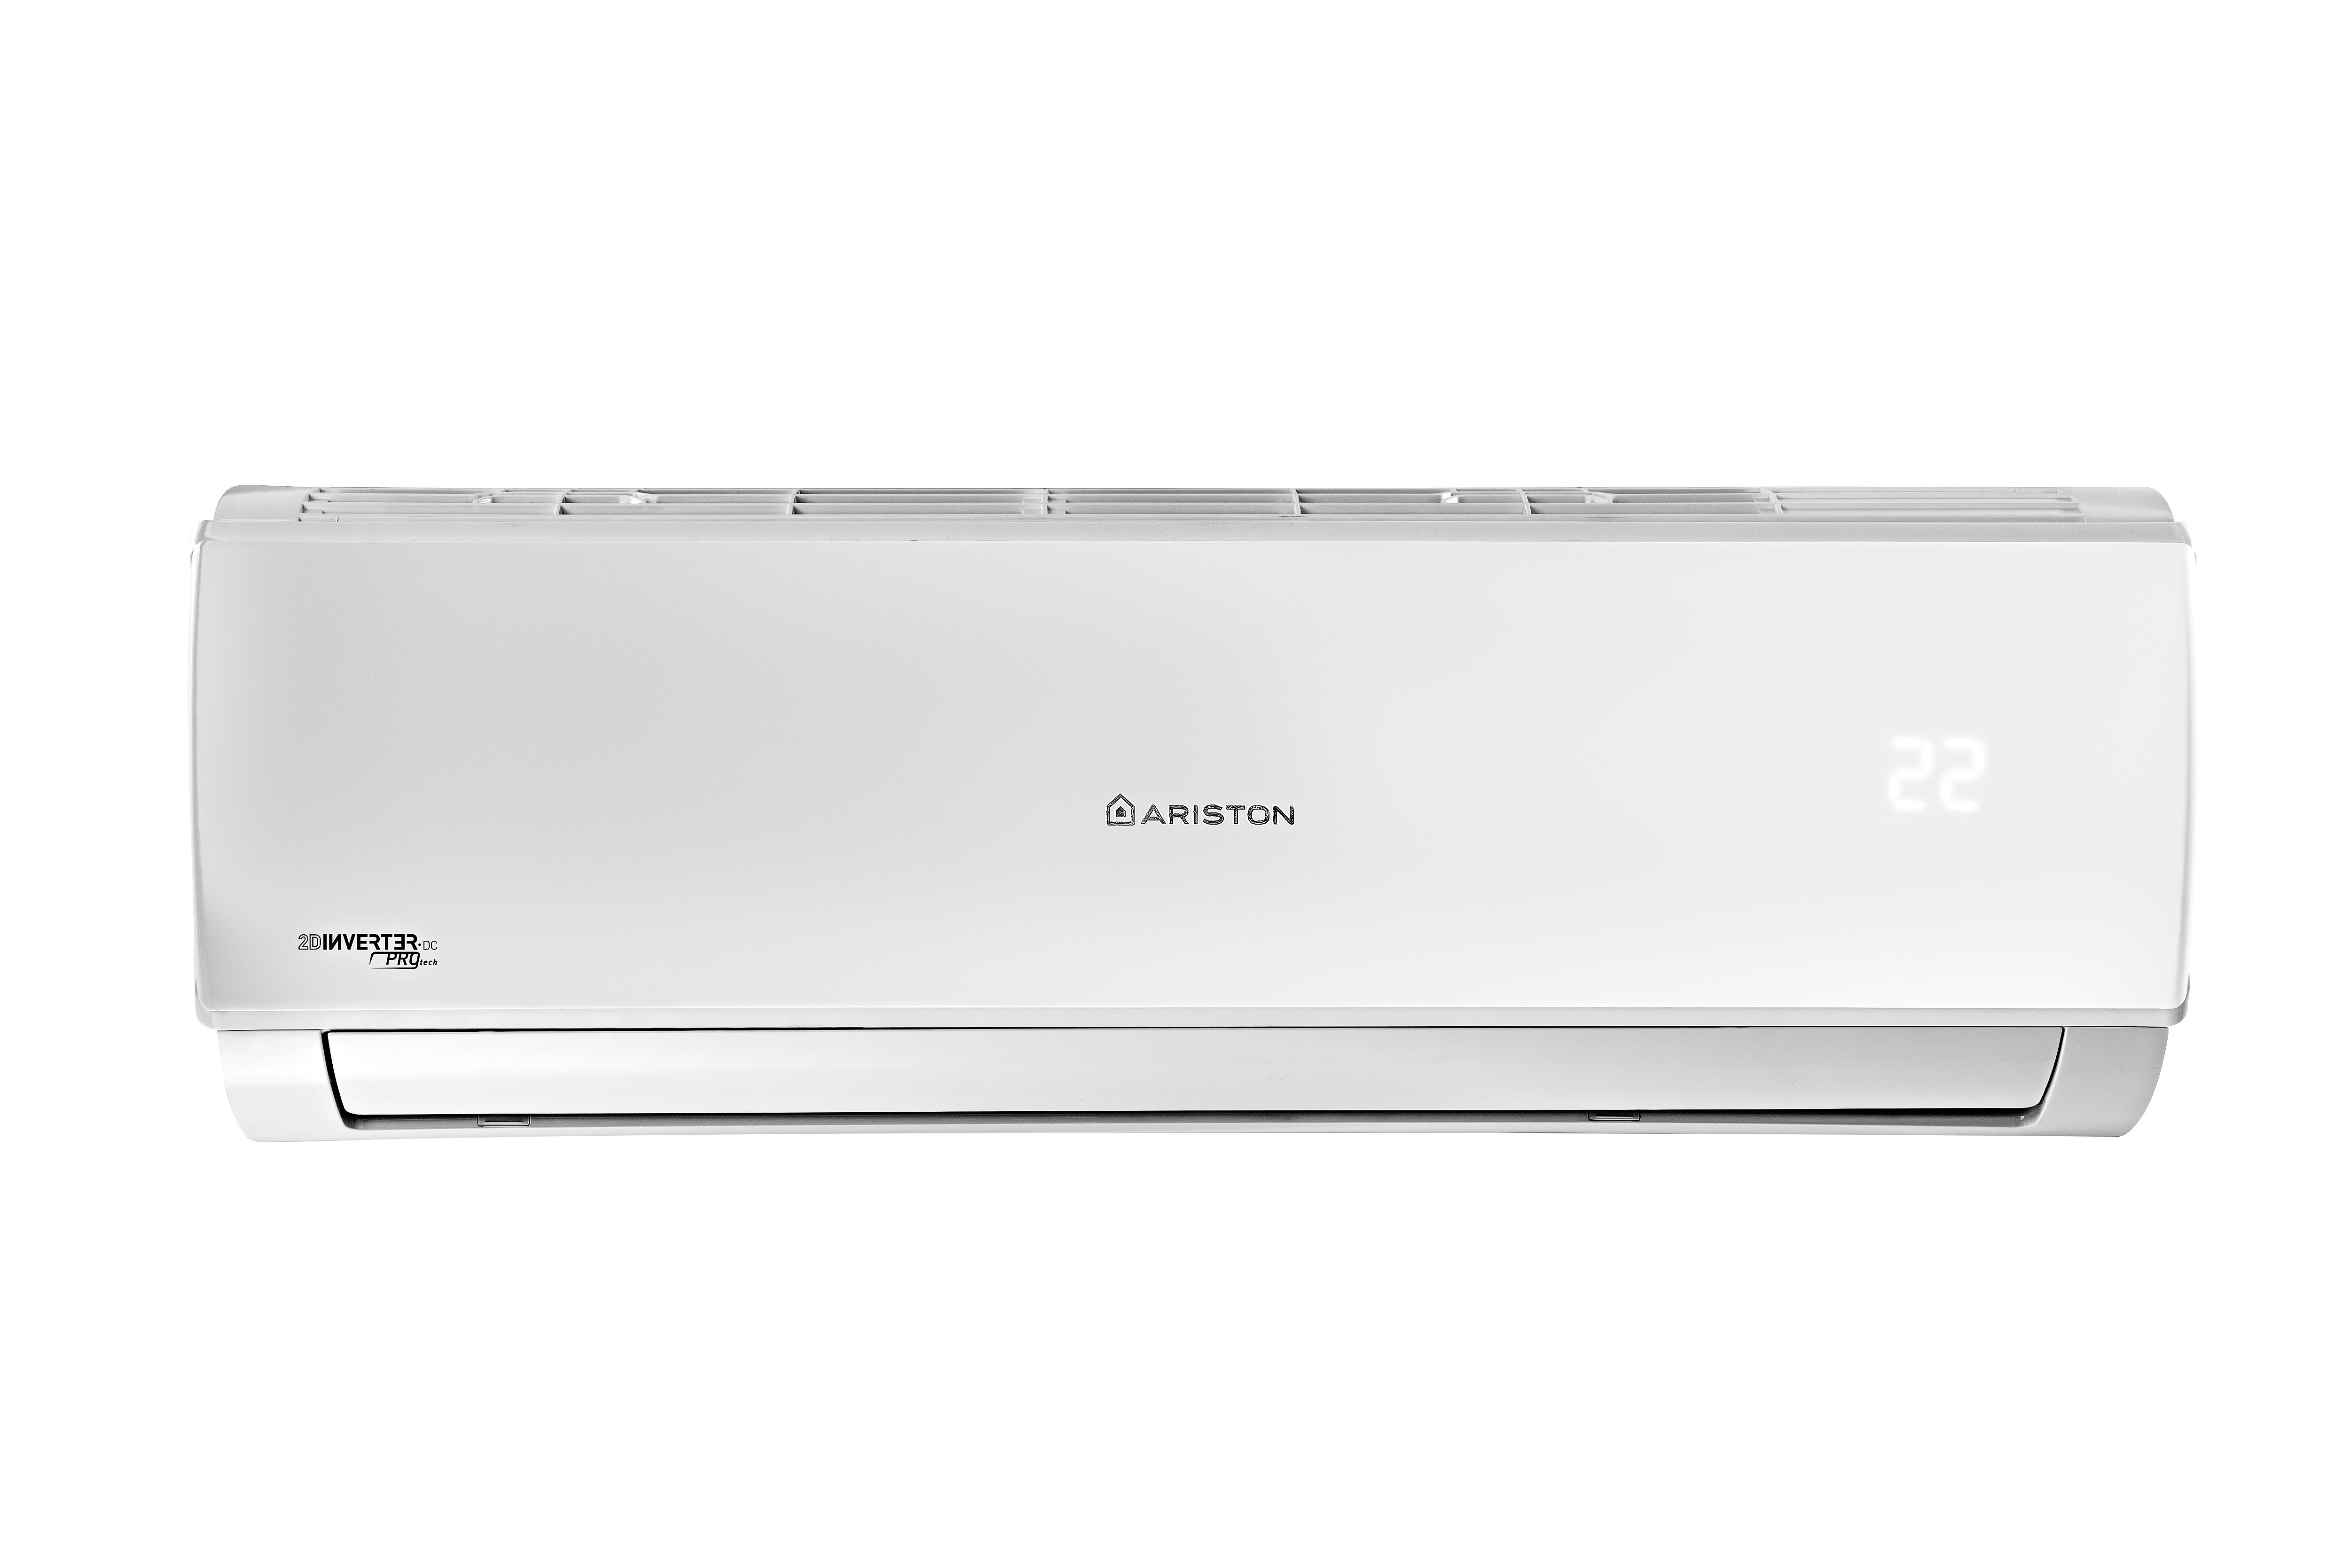 Ariston Inverter A++ 18,000 BTU Air Conditioner - ALYS R32 50 MUD0-O (Wi-Fi Optional)